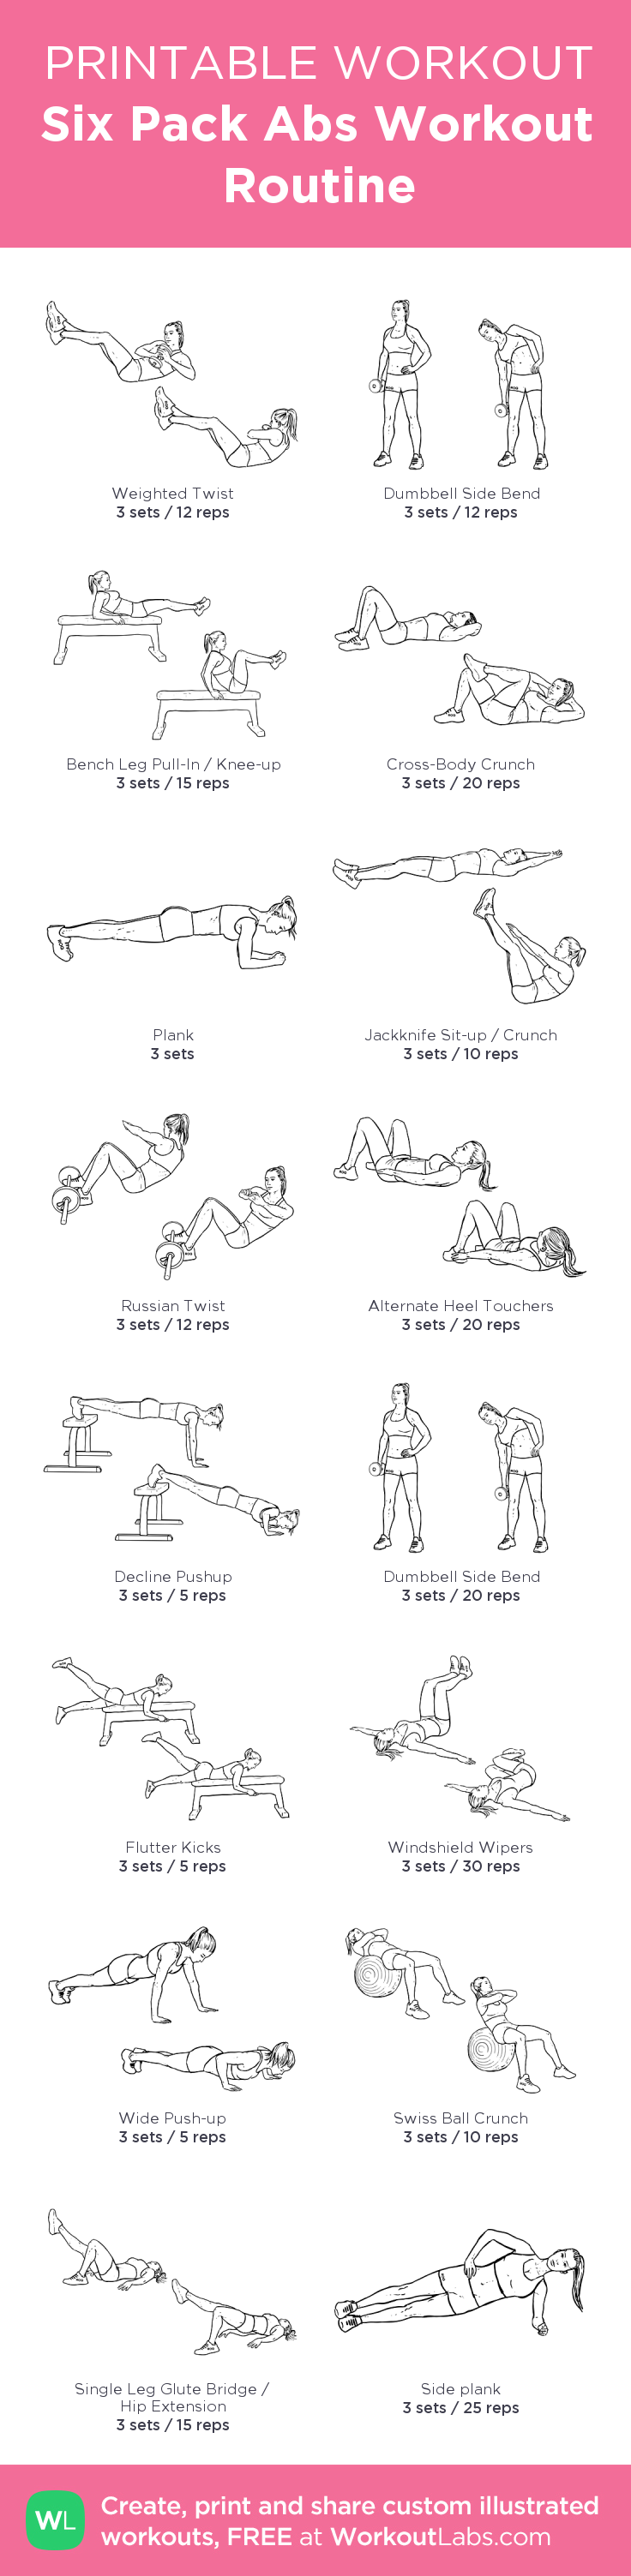 Six Pack Abs Workout Routine My Custom Printable By WorkoutLabs Workoutlabs